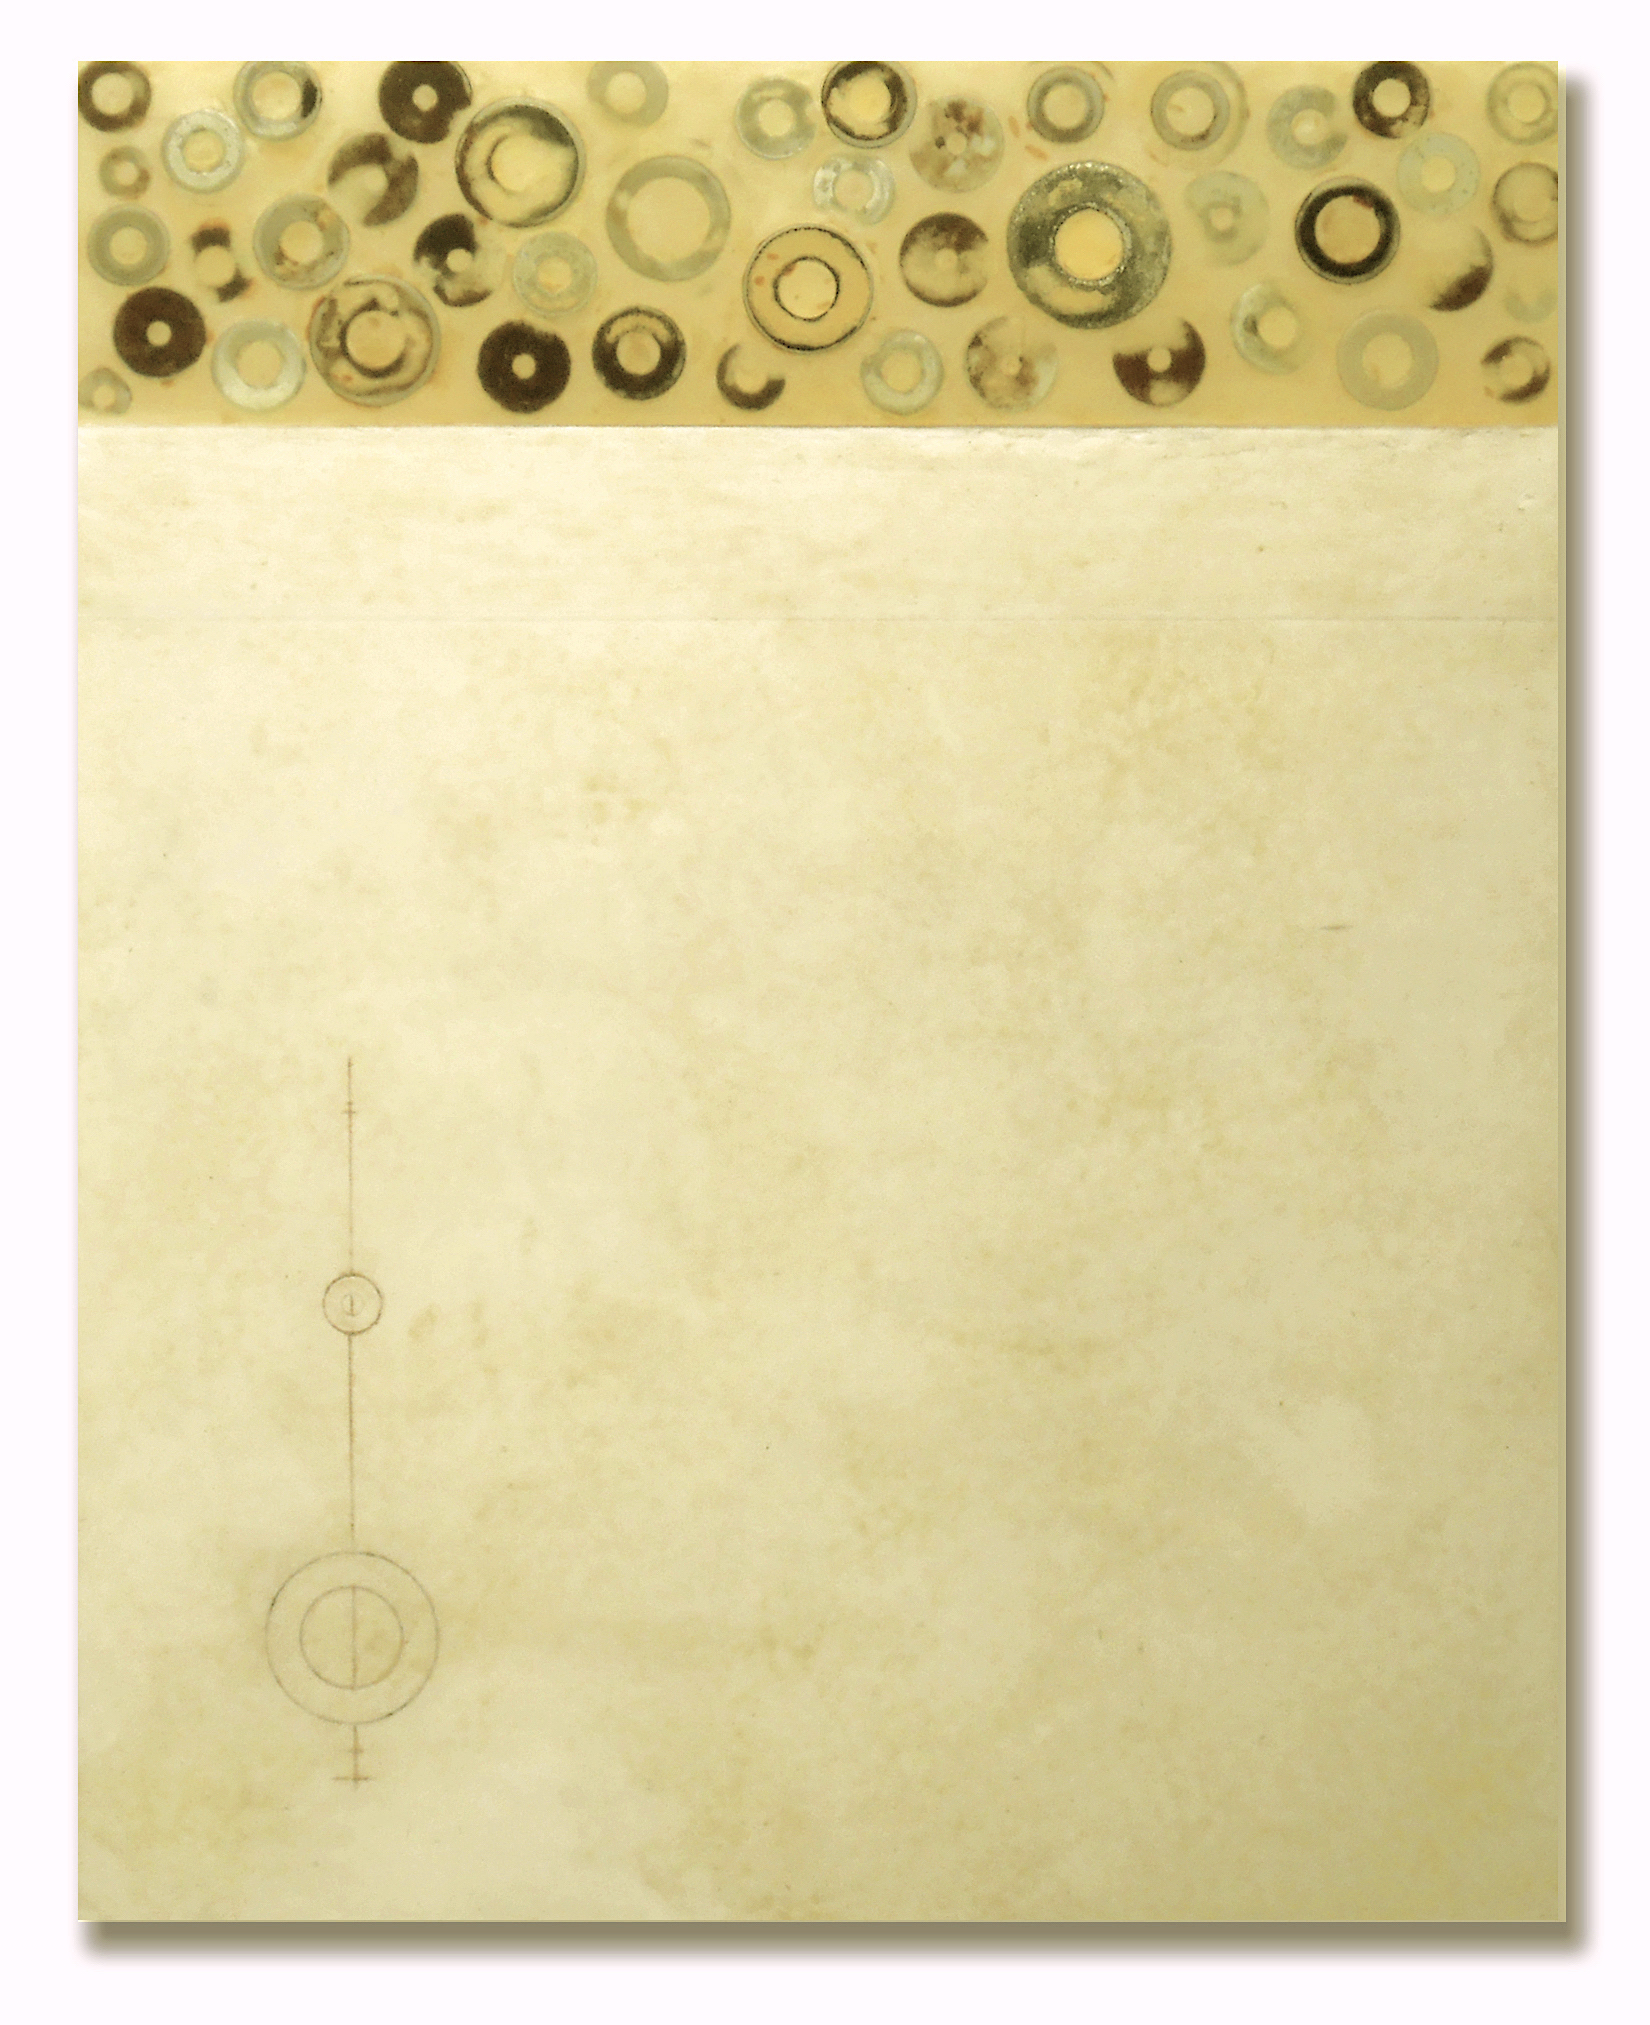 Mauricio Morillas, Compass, 20x16, mixed media with metal rings on wood panel